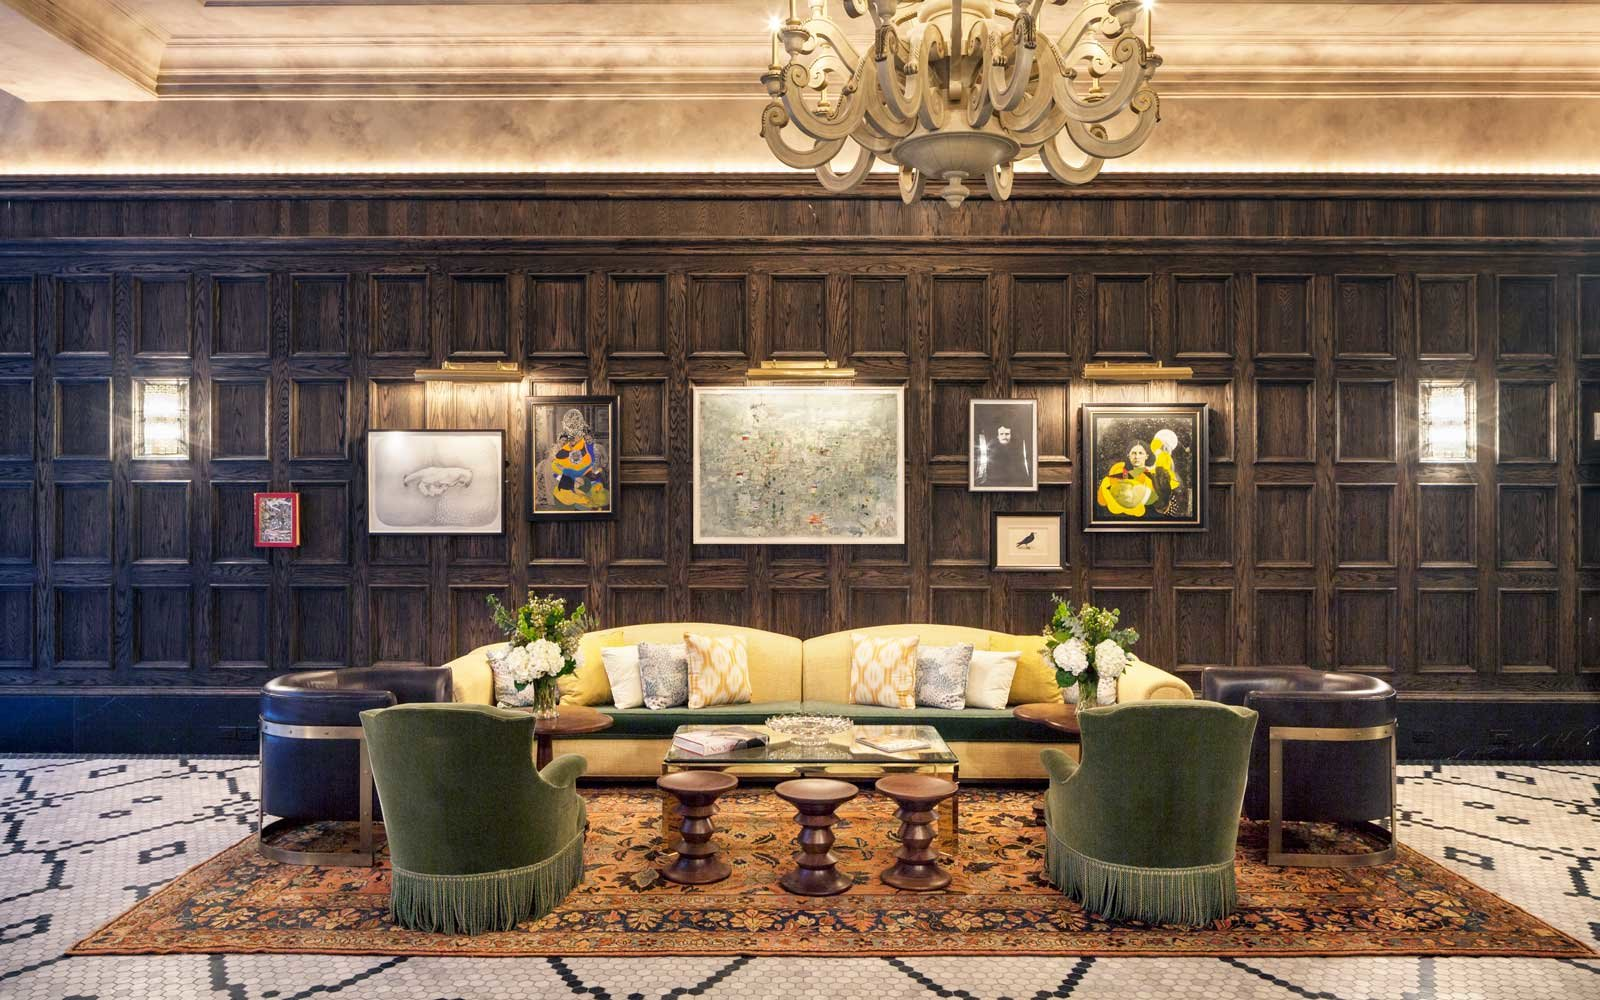 Lounge area at the Beekman Hotel